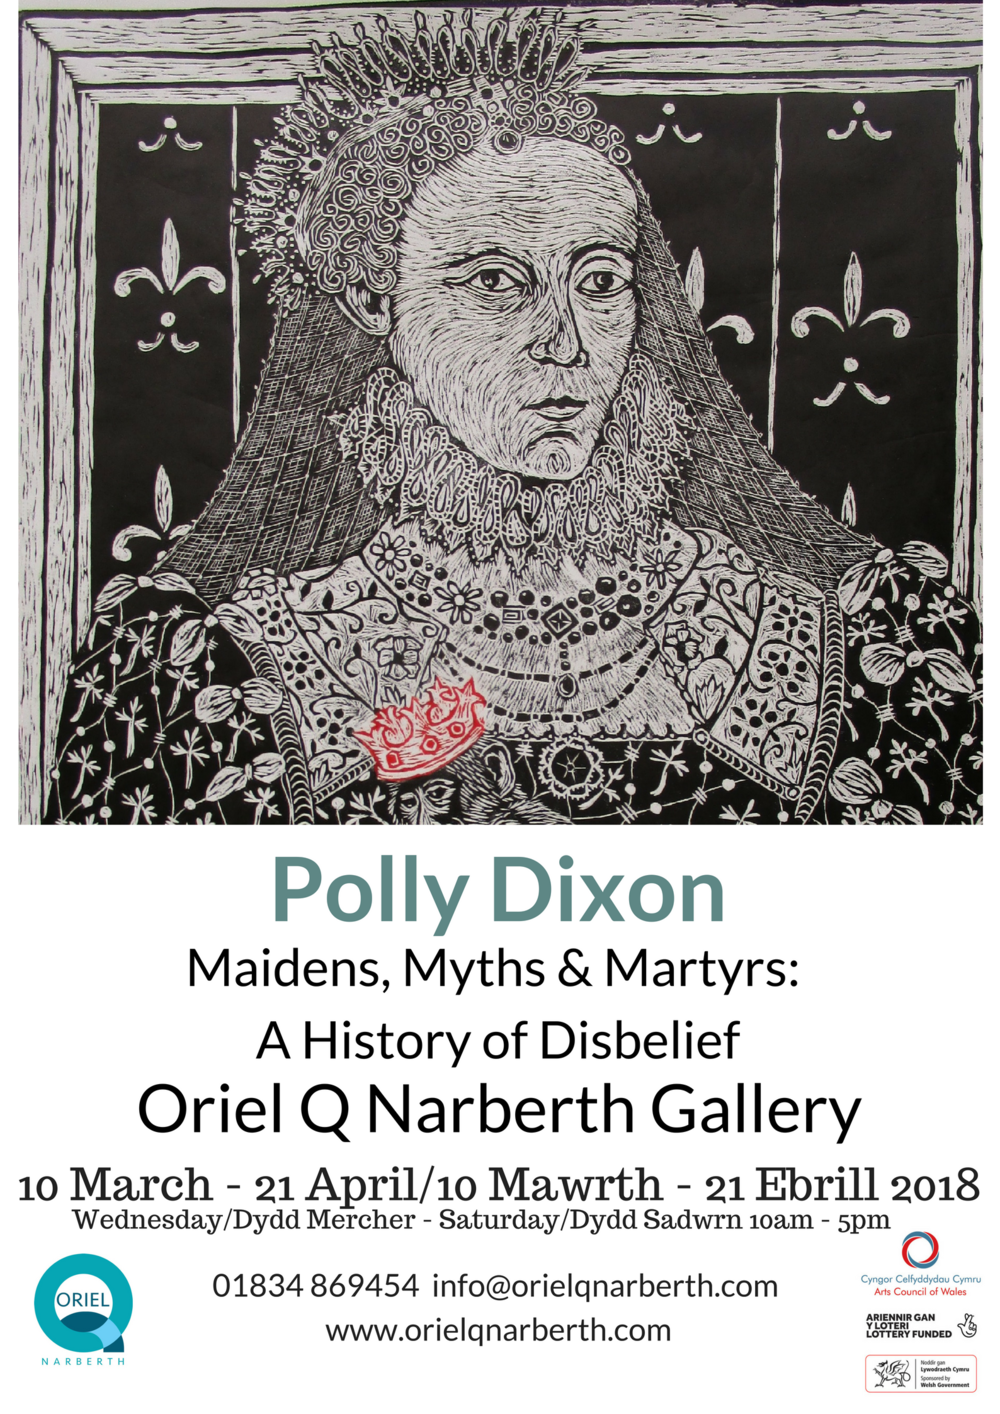 polly dixon poster updated 2018.png